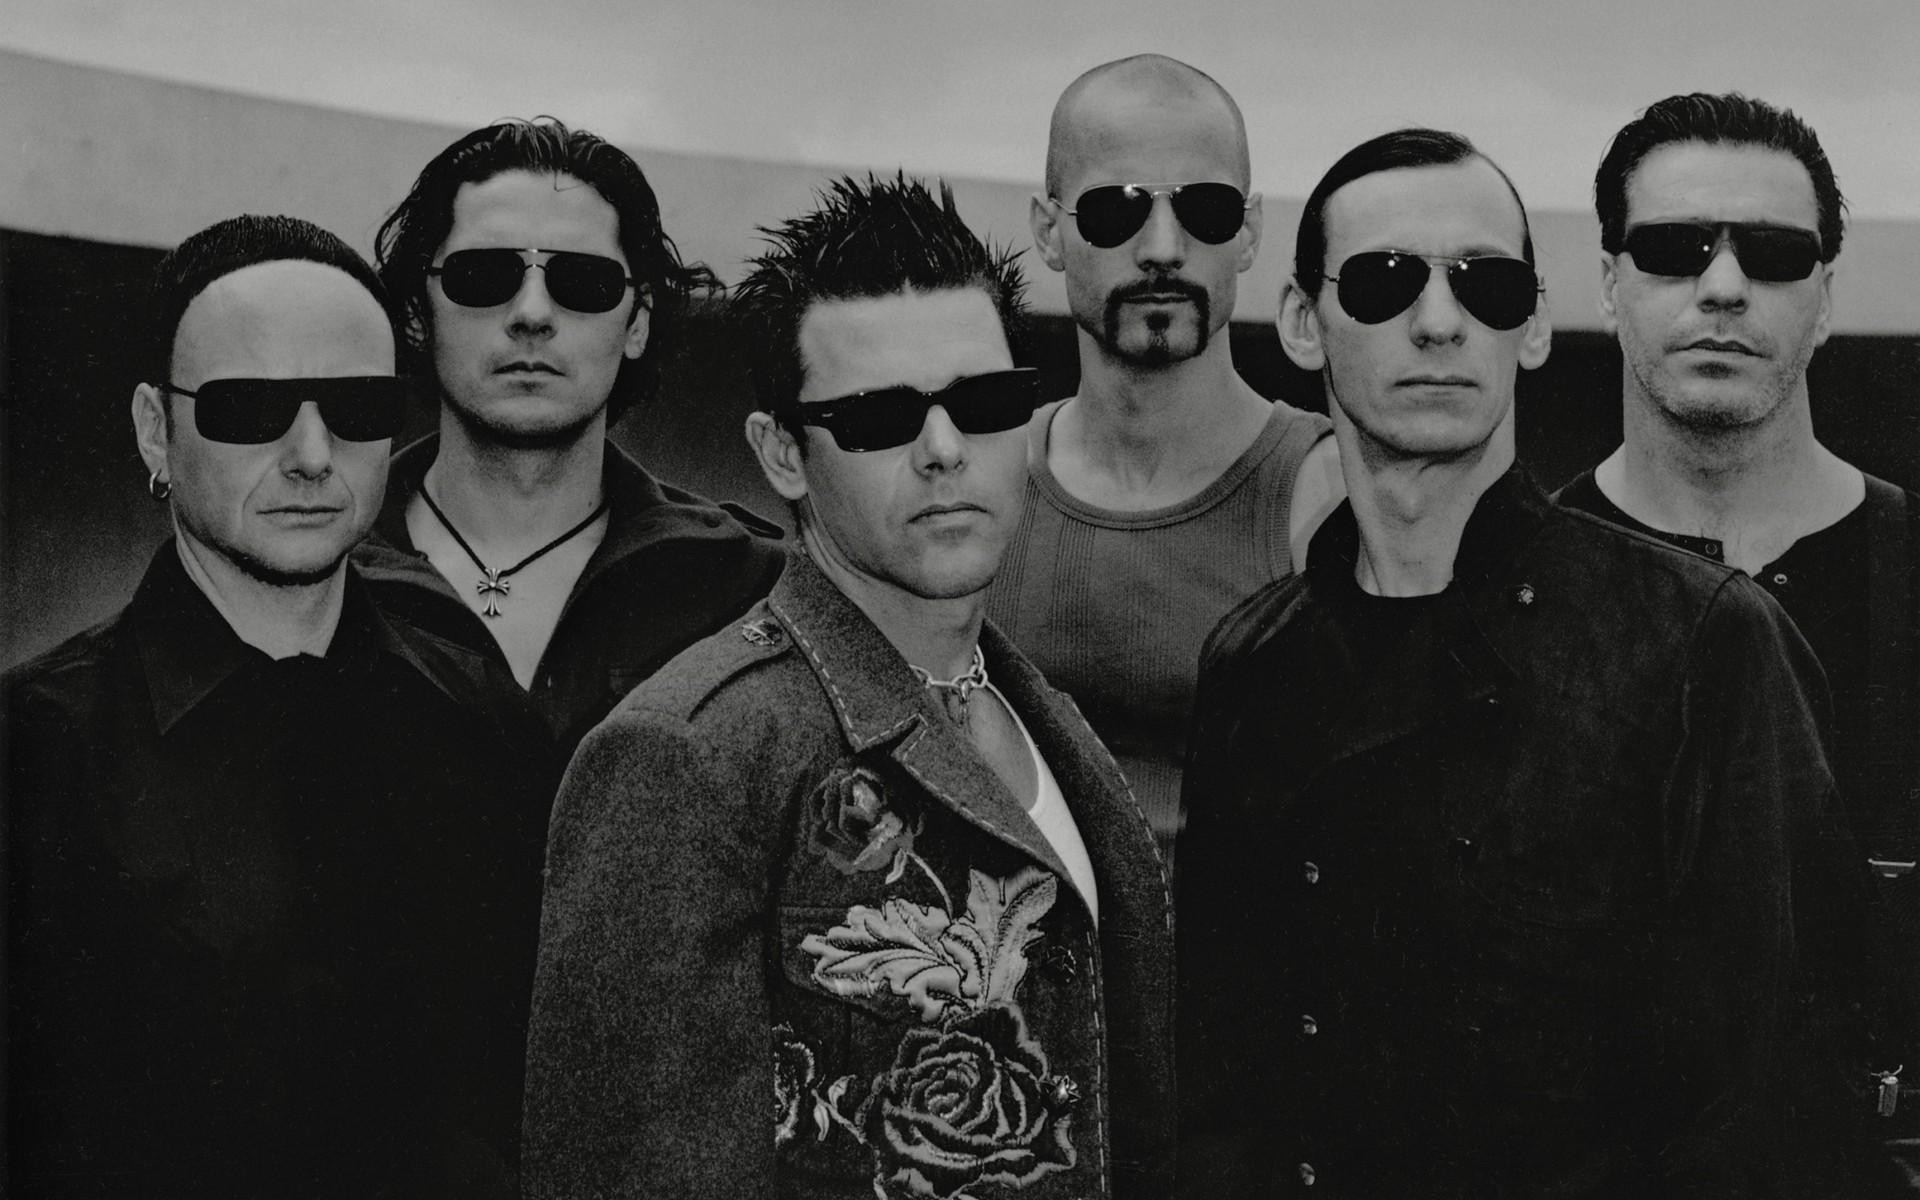 1920x1200 Rammstein wallpapers for iphone